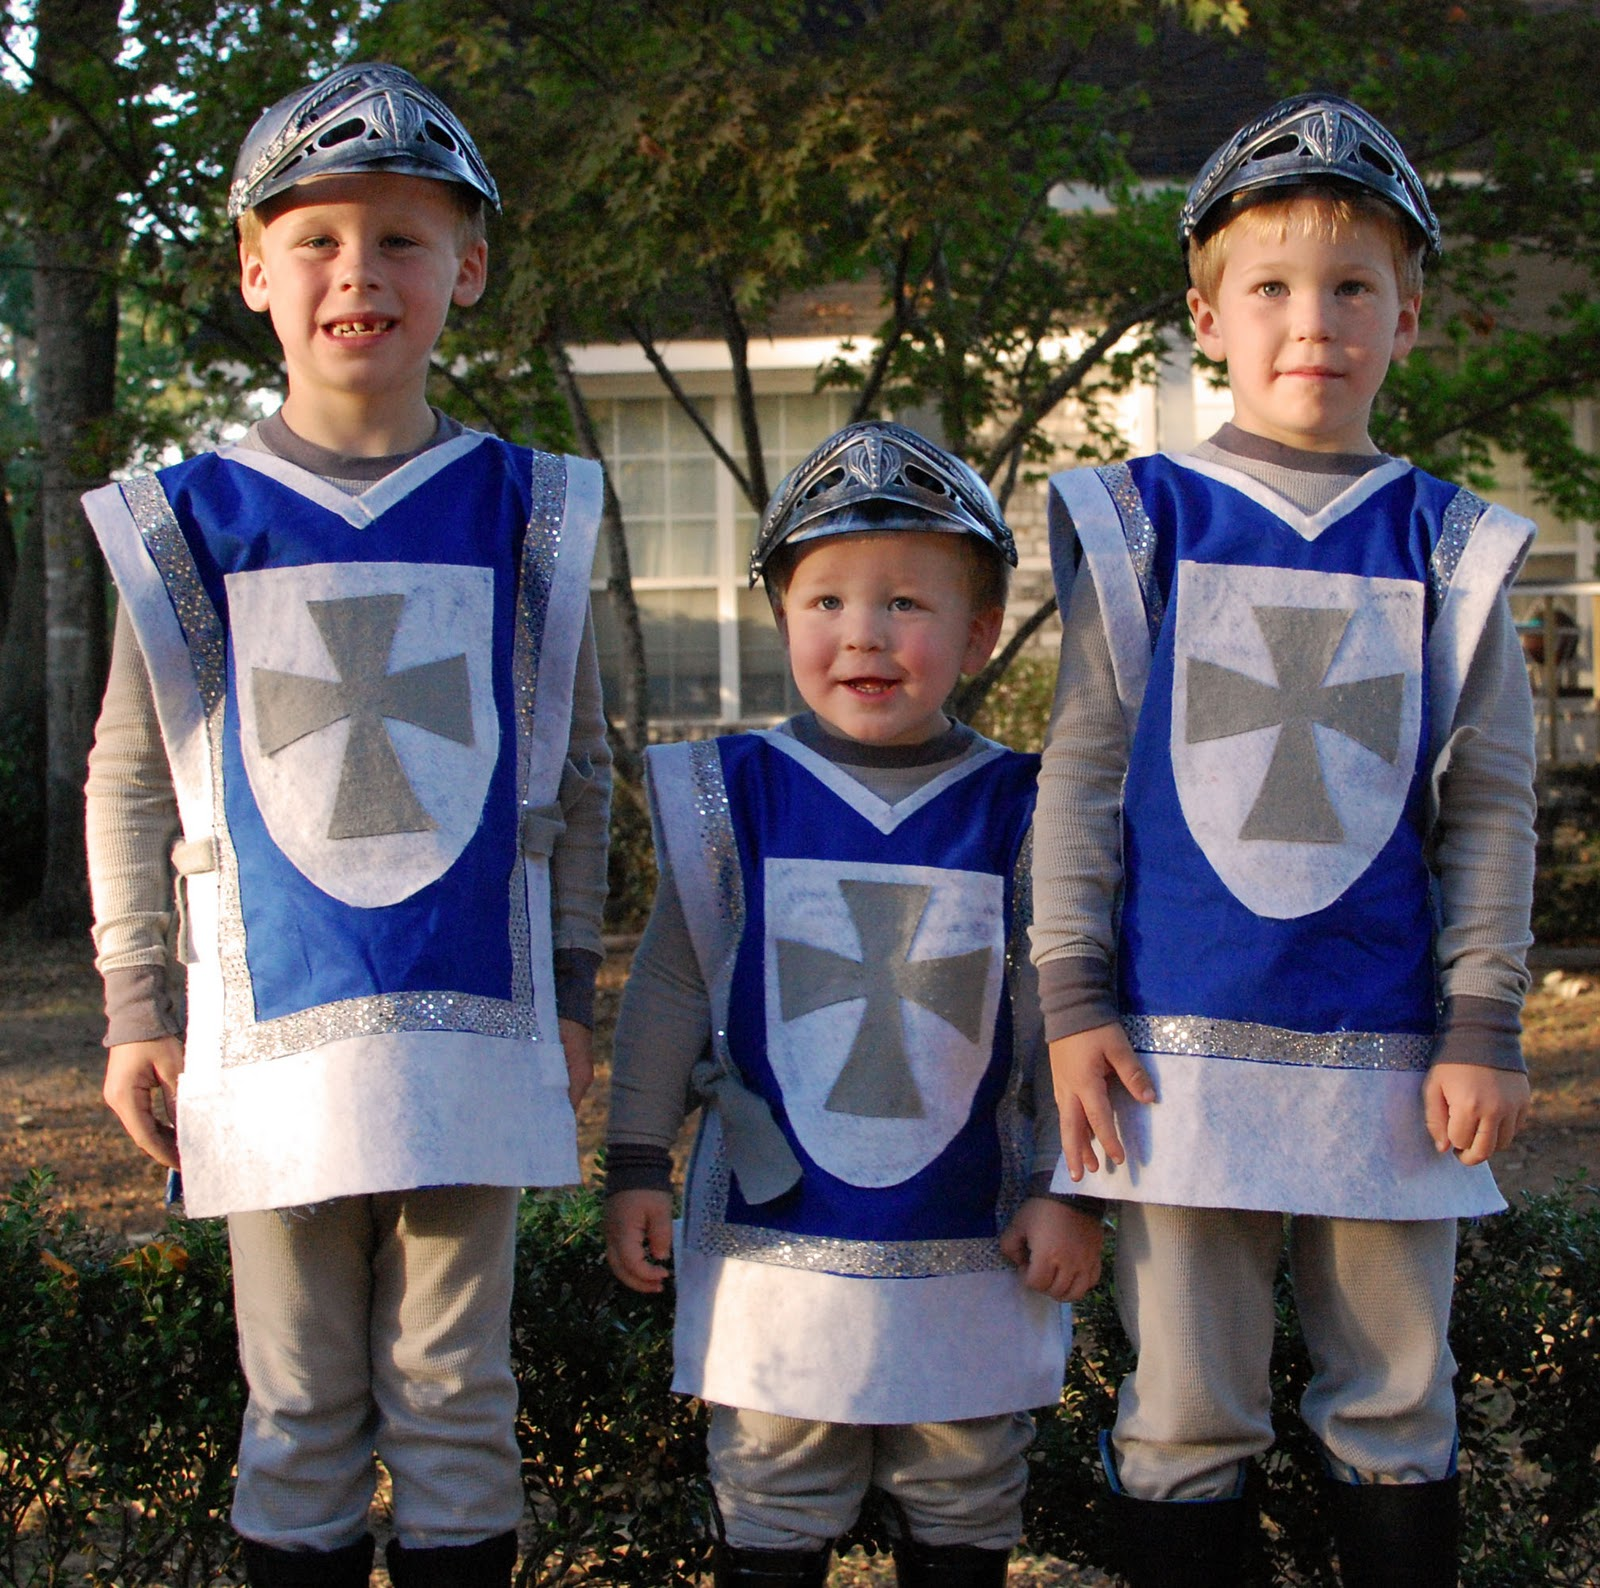 Homemade Knights Costume